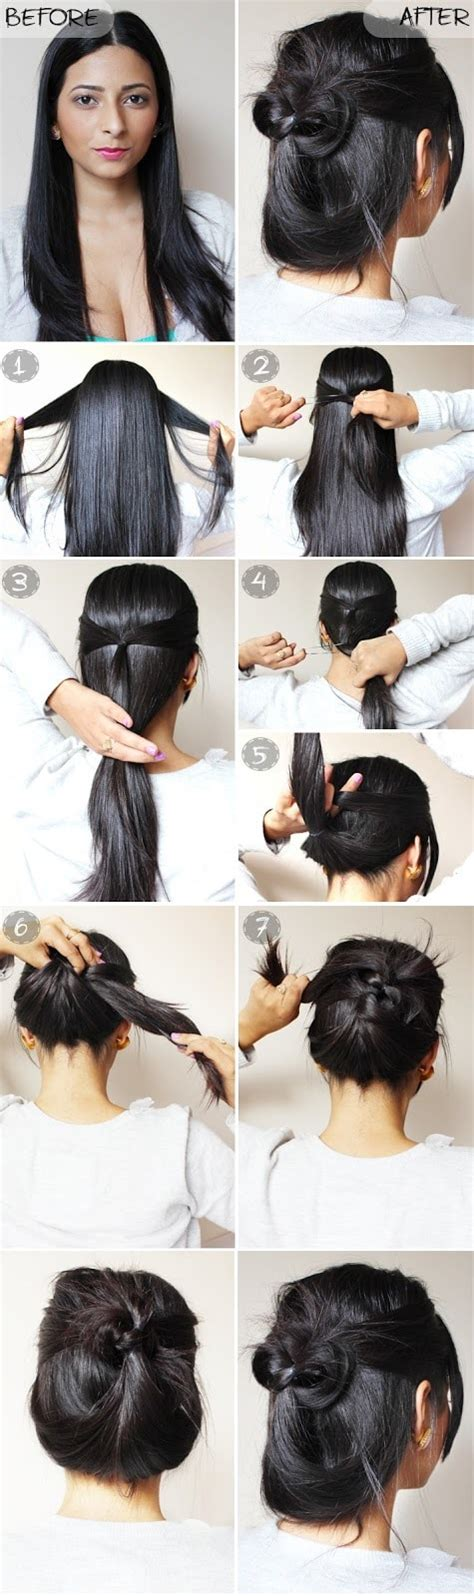 quick easy casual hairstyles ideas 11 best diy hairstyle tutorials for your next going out